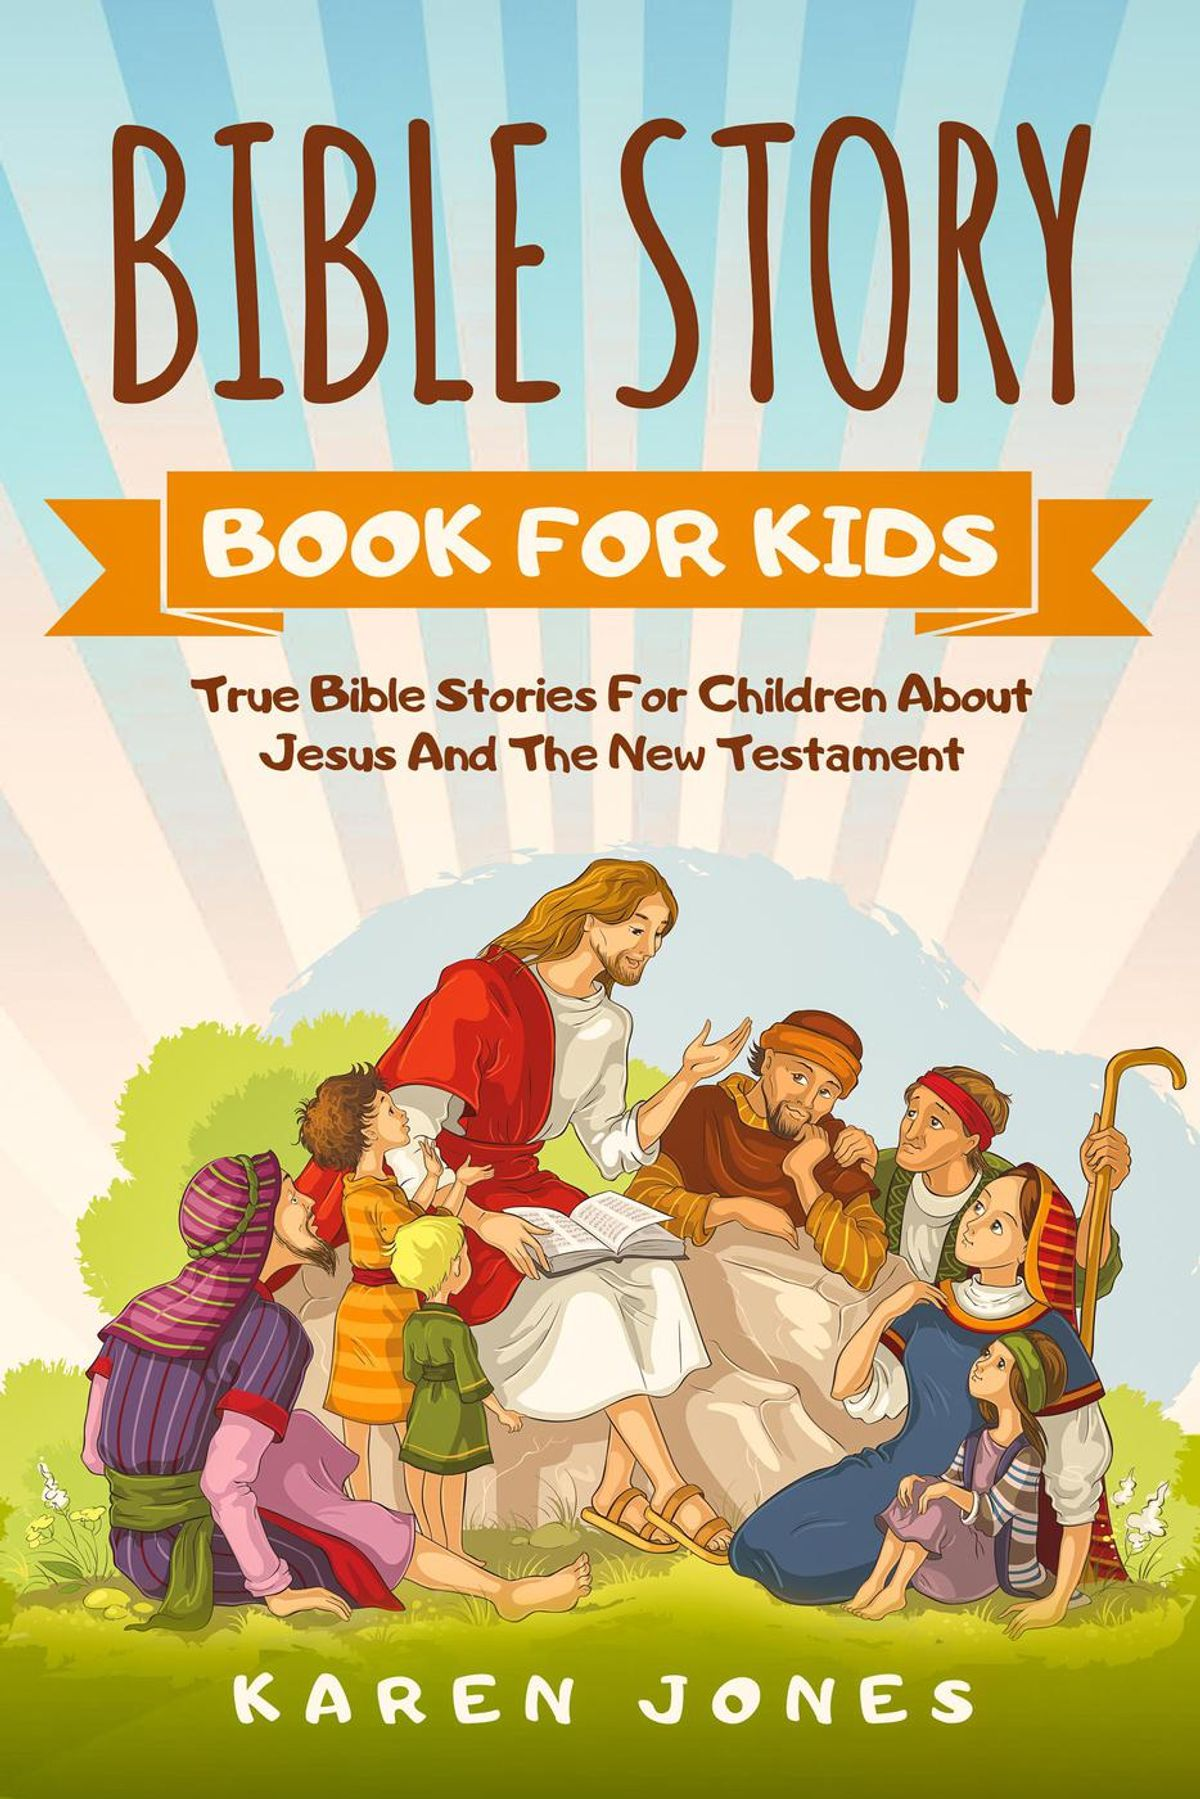 Bible Story Book For Kids True Bible Stories For Children